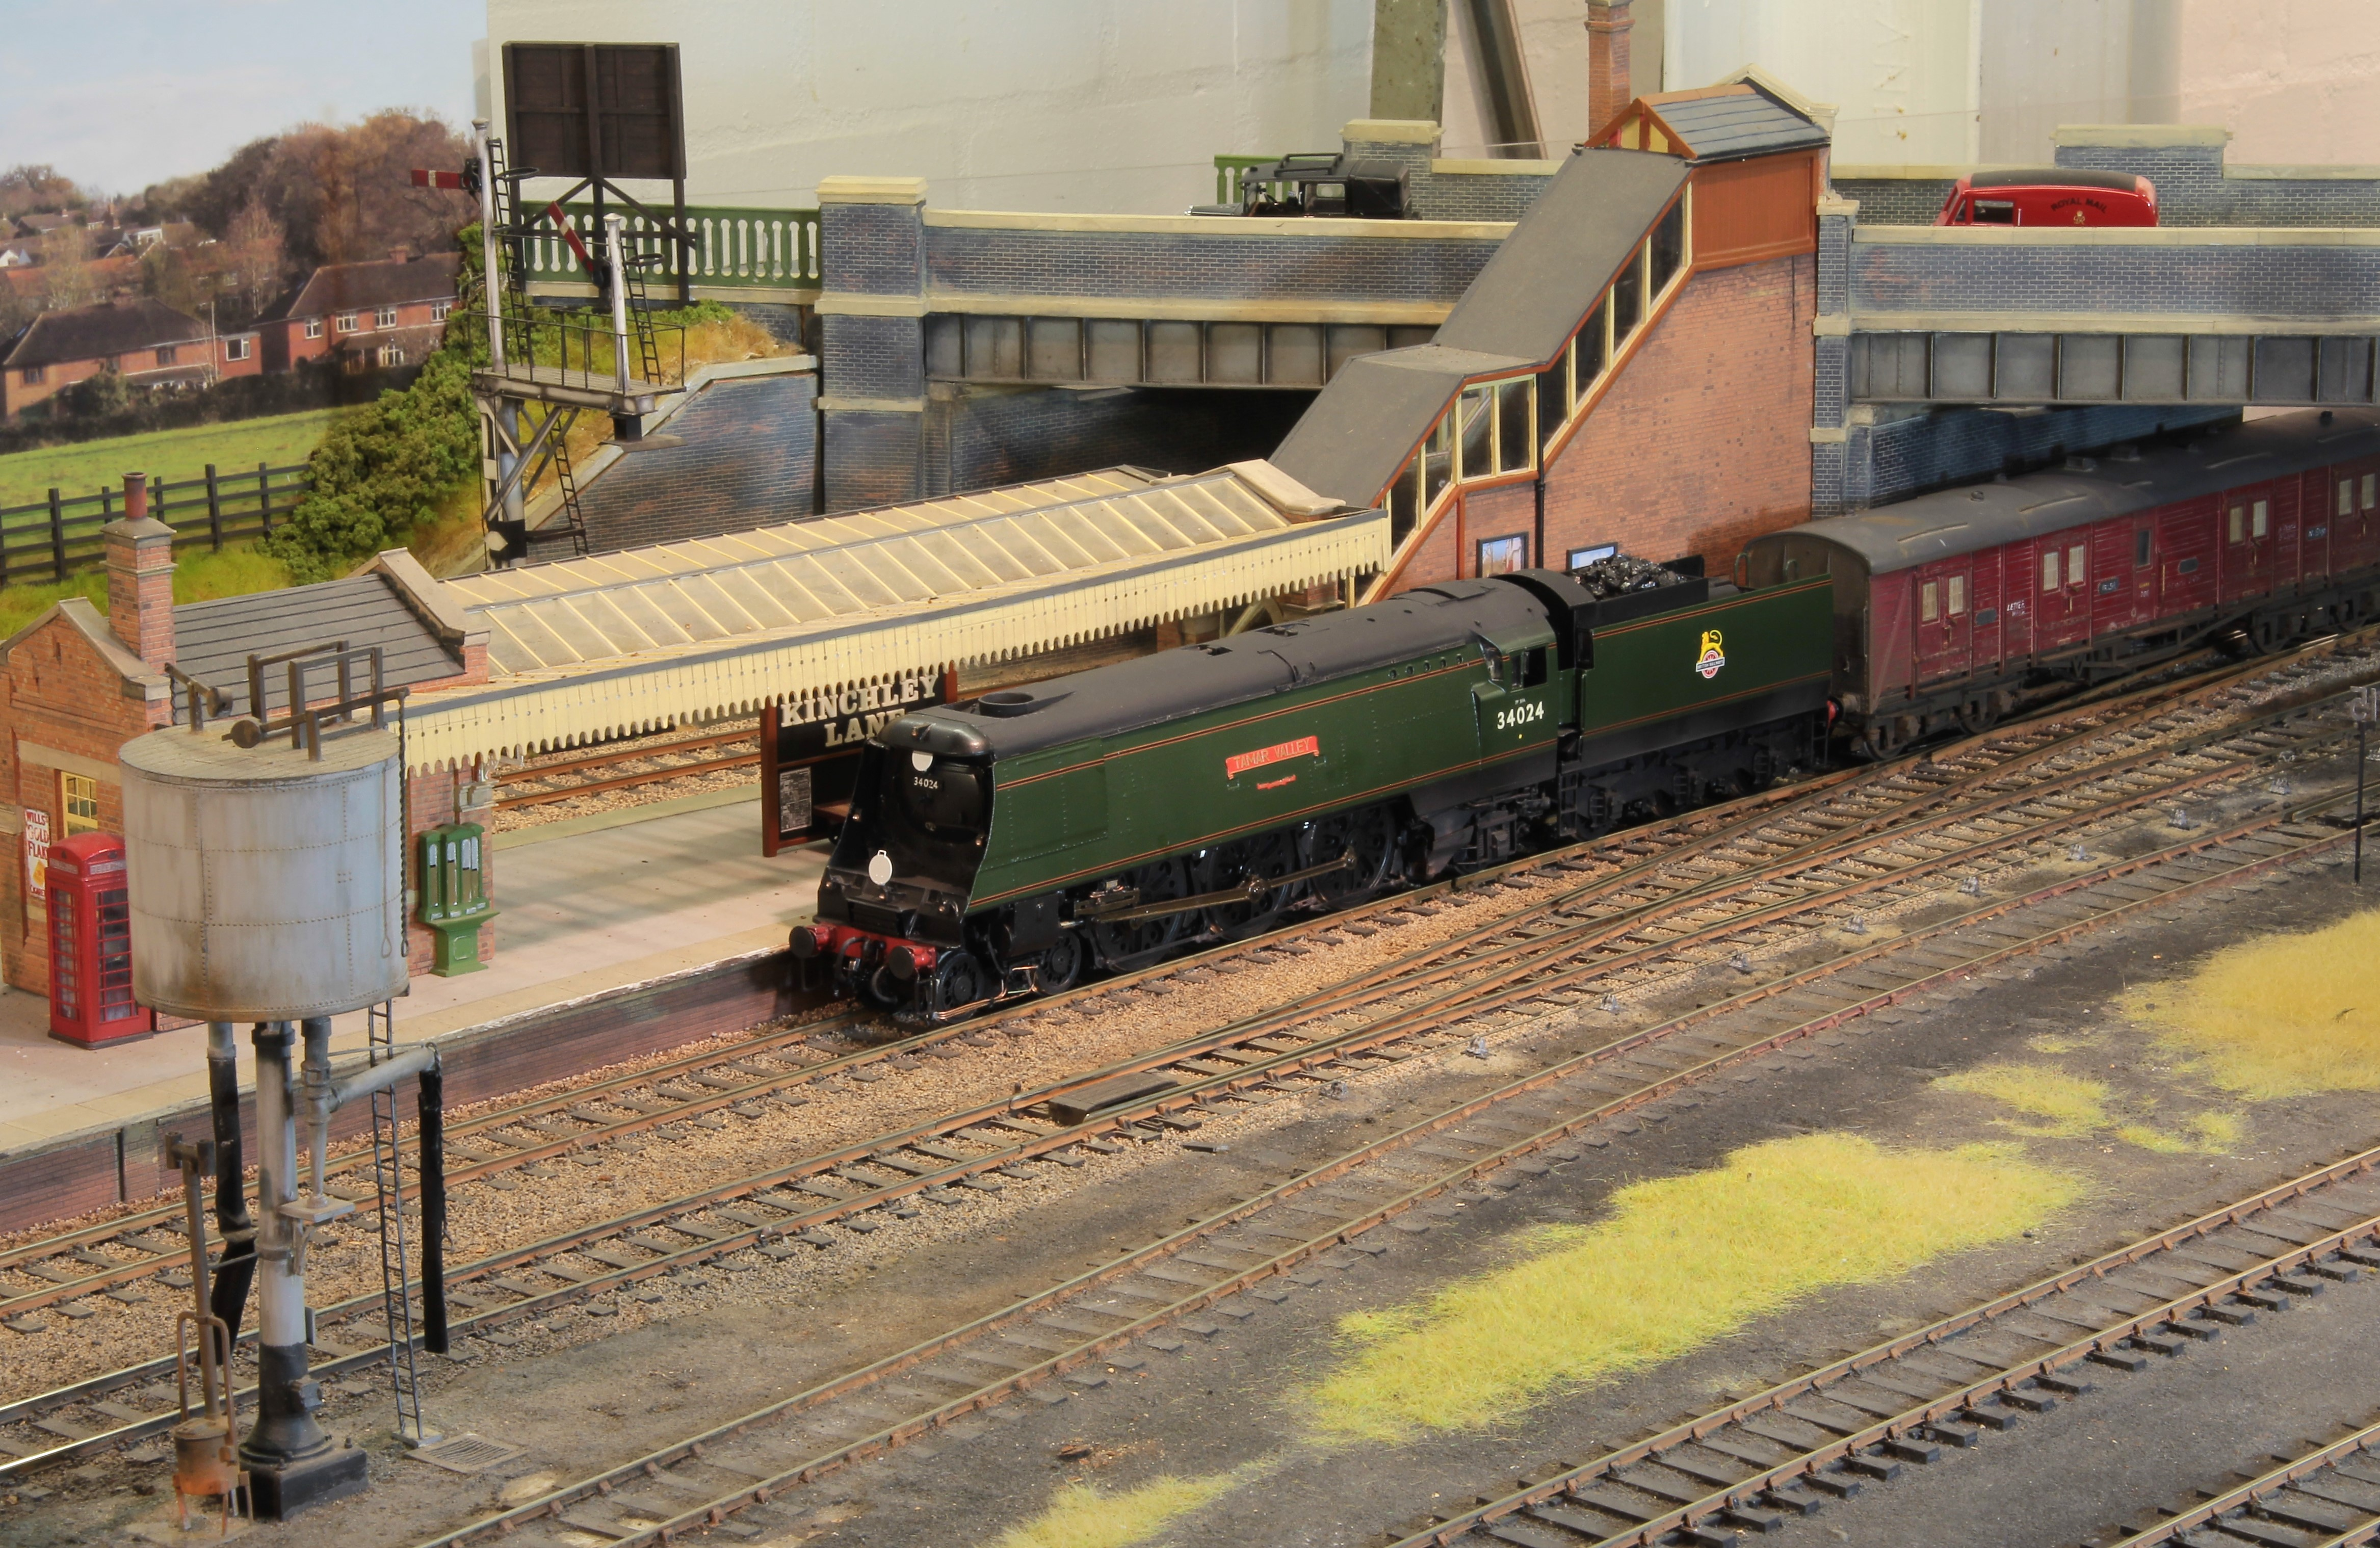 SR West Country class 34024 'Tamar Valle